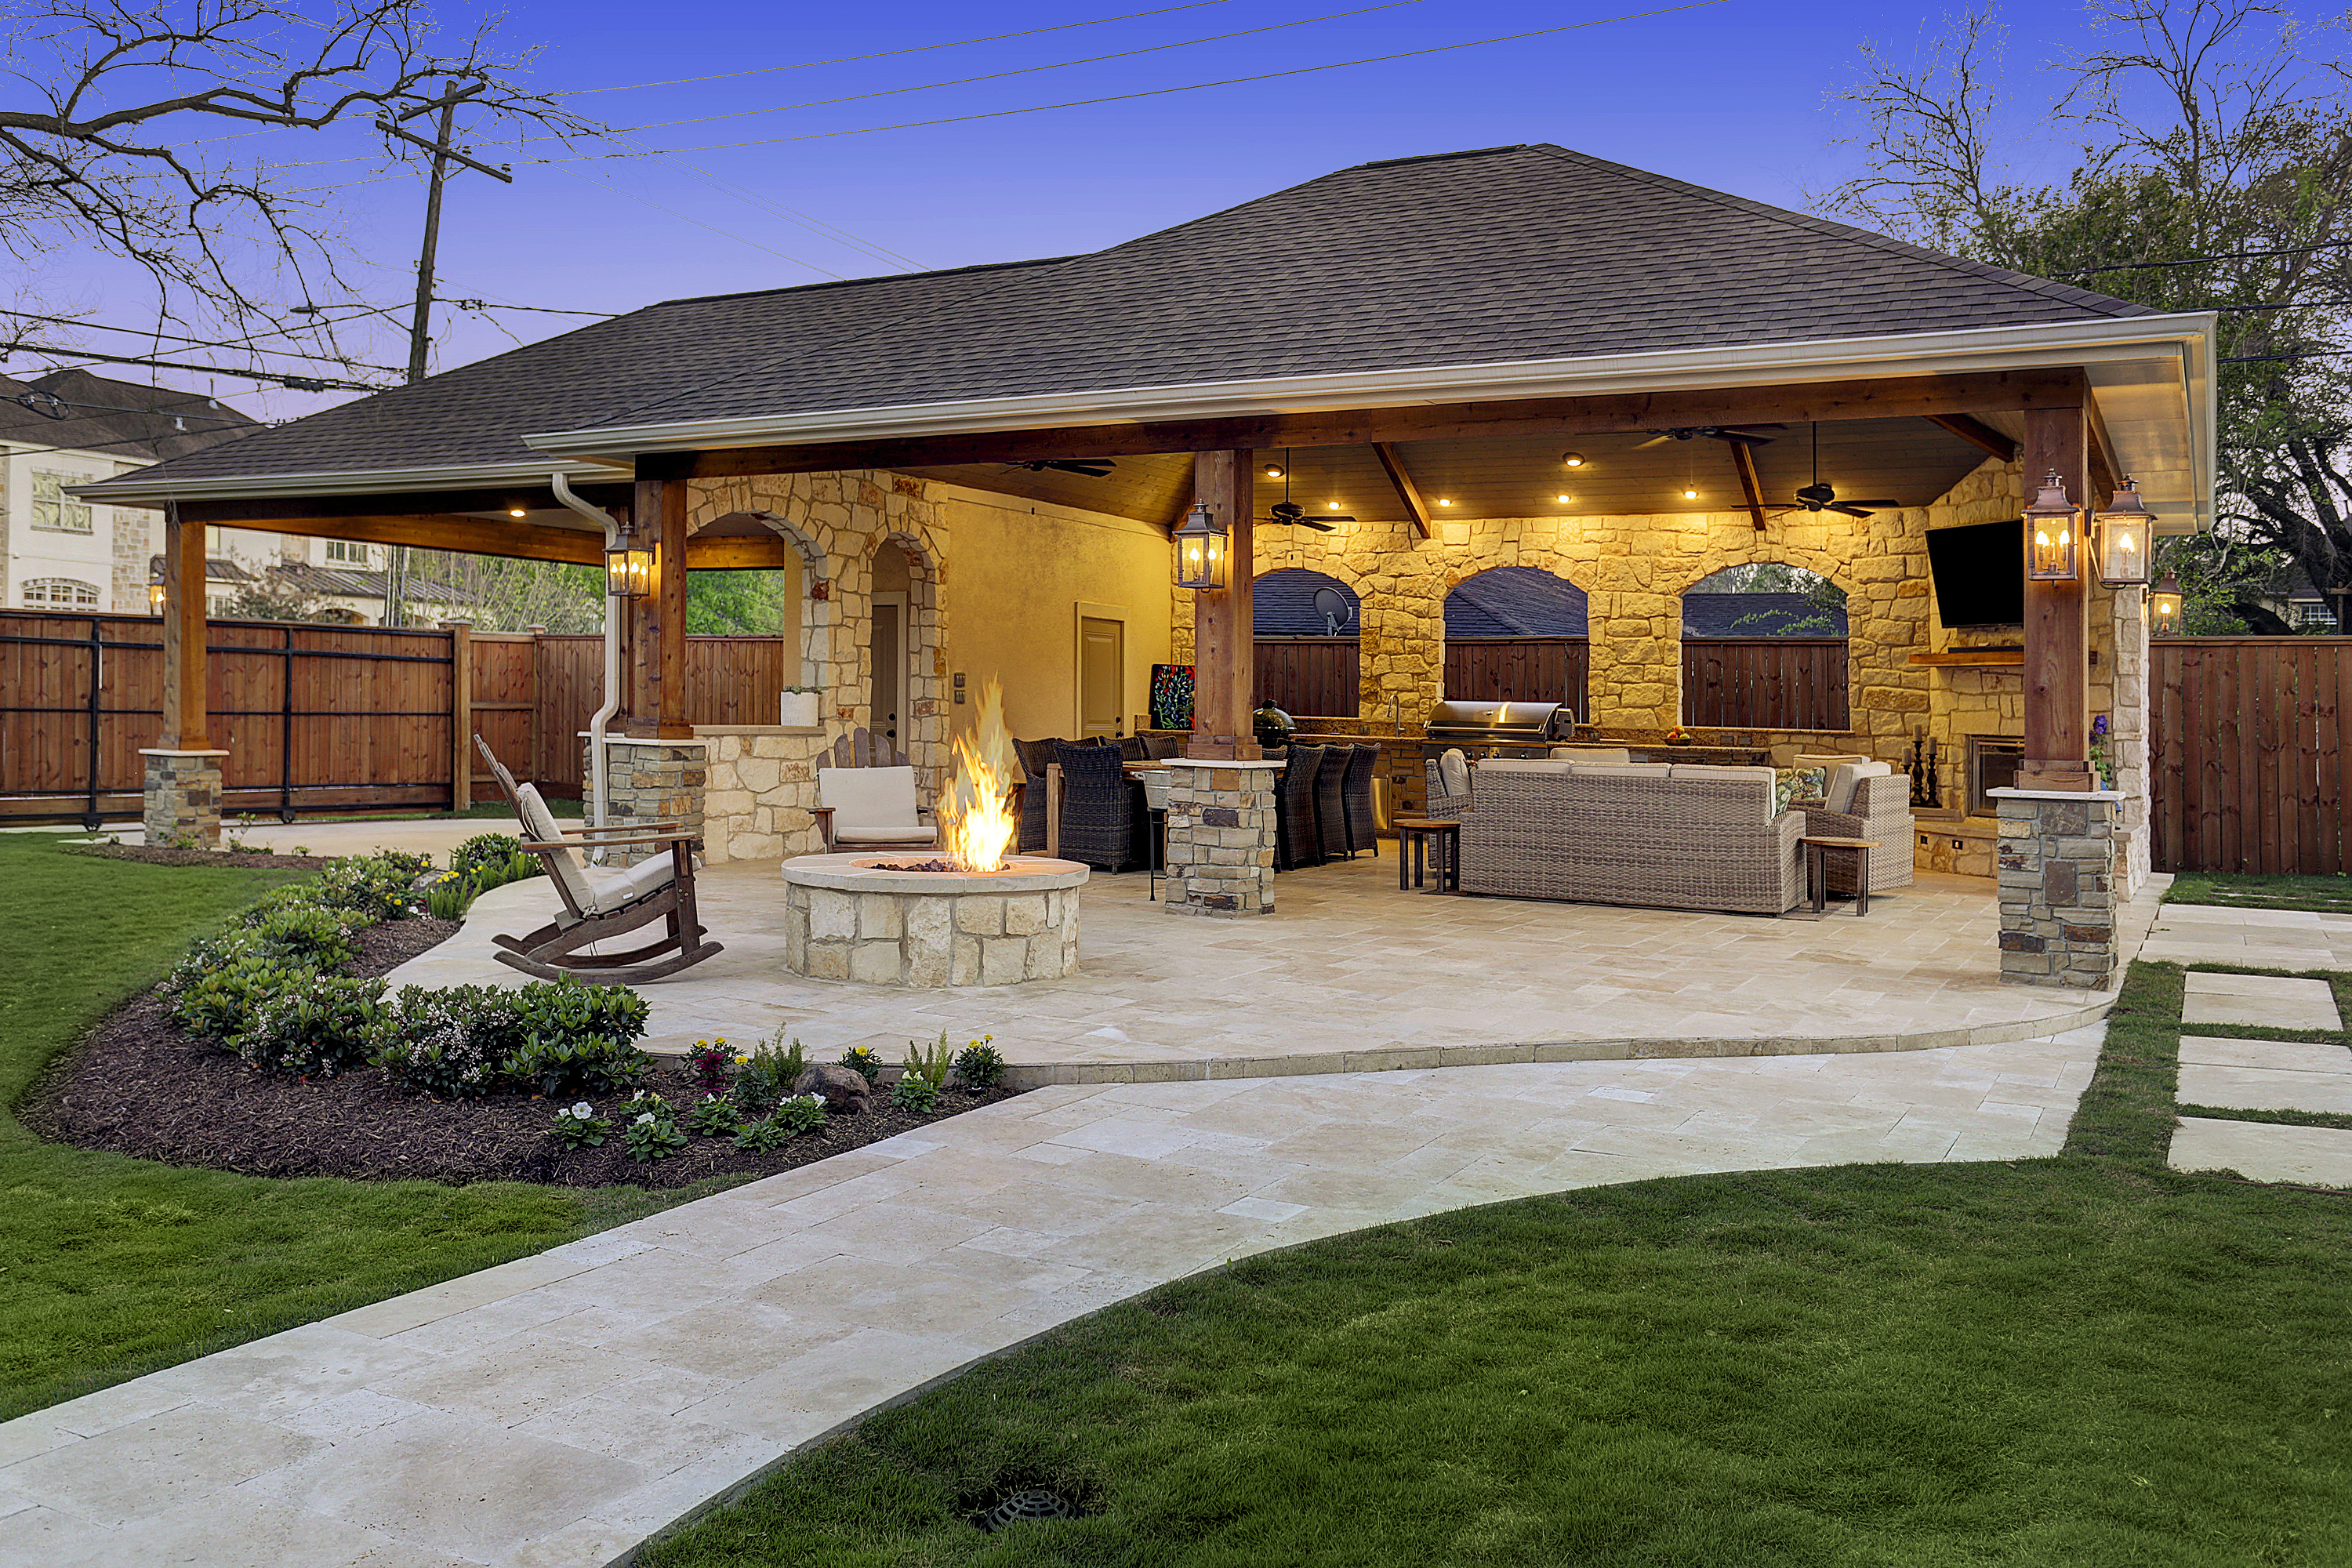 Expanded Outdoor Living Area in Houston - Texas Custom Patios